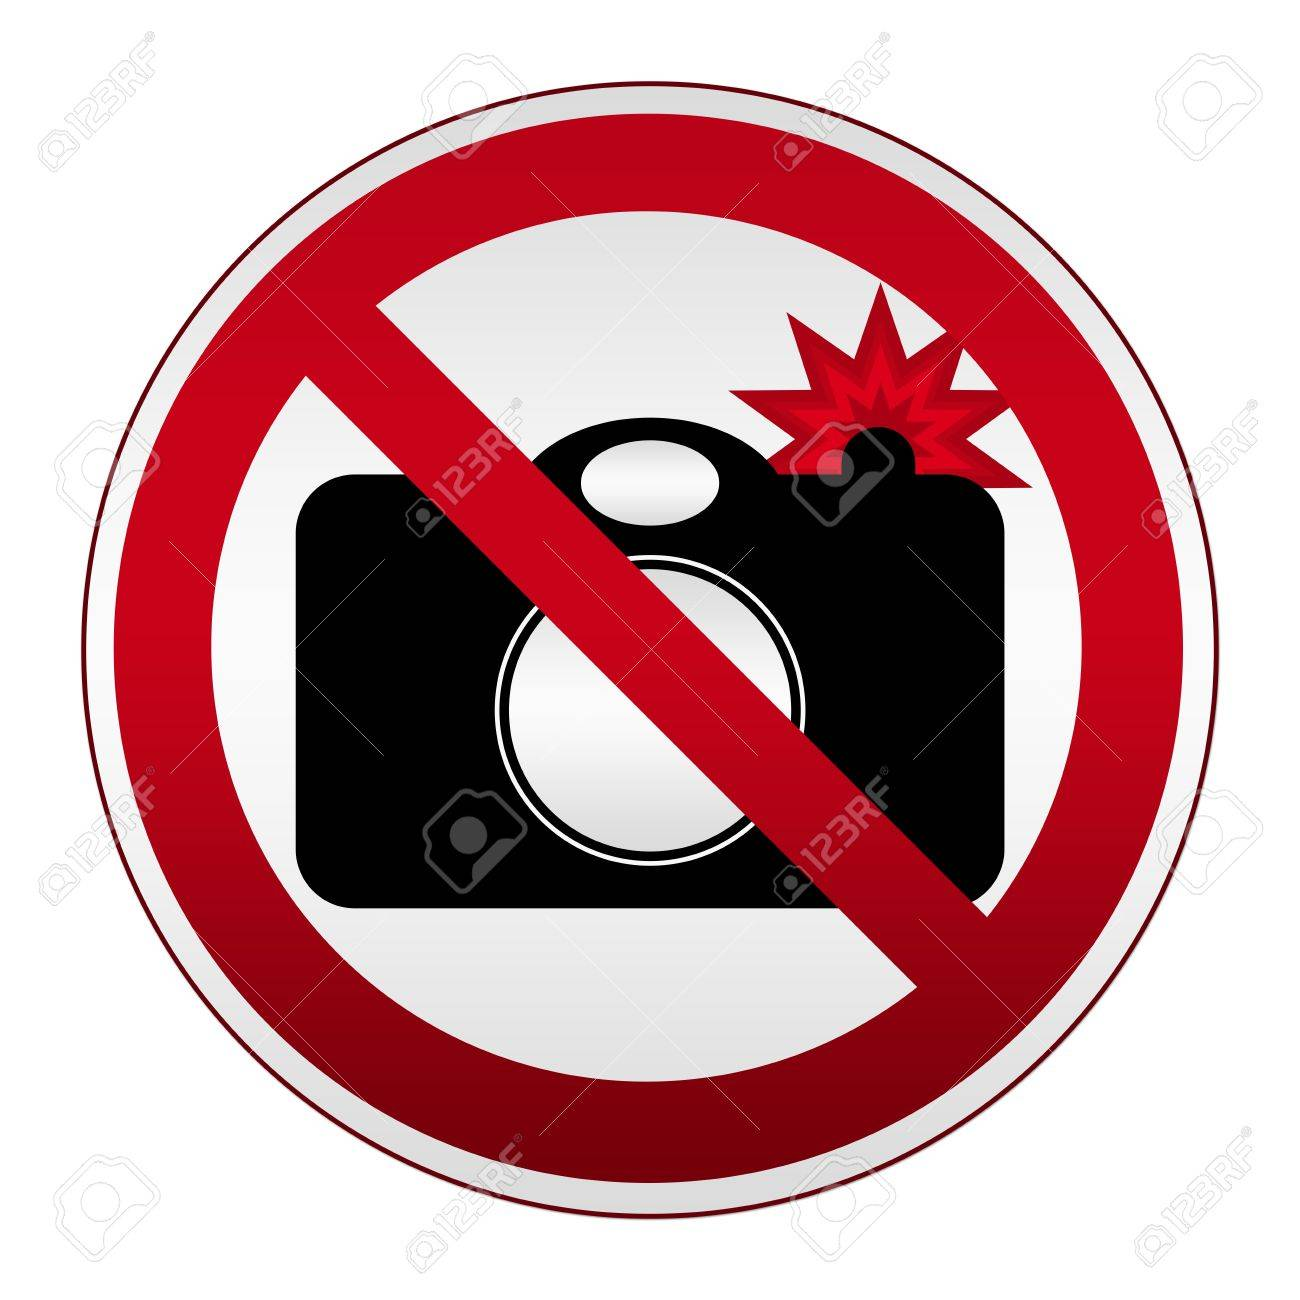 Prohibited Circle Silver Metallic No Photography With Flash Sign Isolated on White Background Stock Photo - 17607655